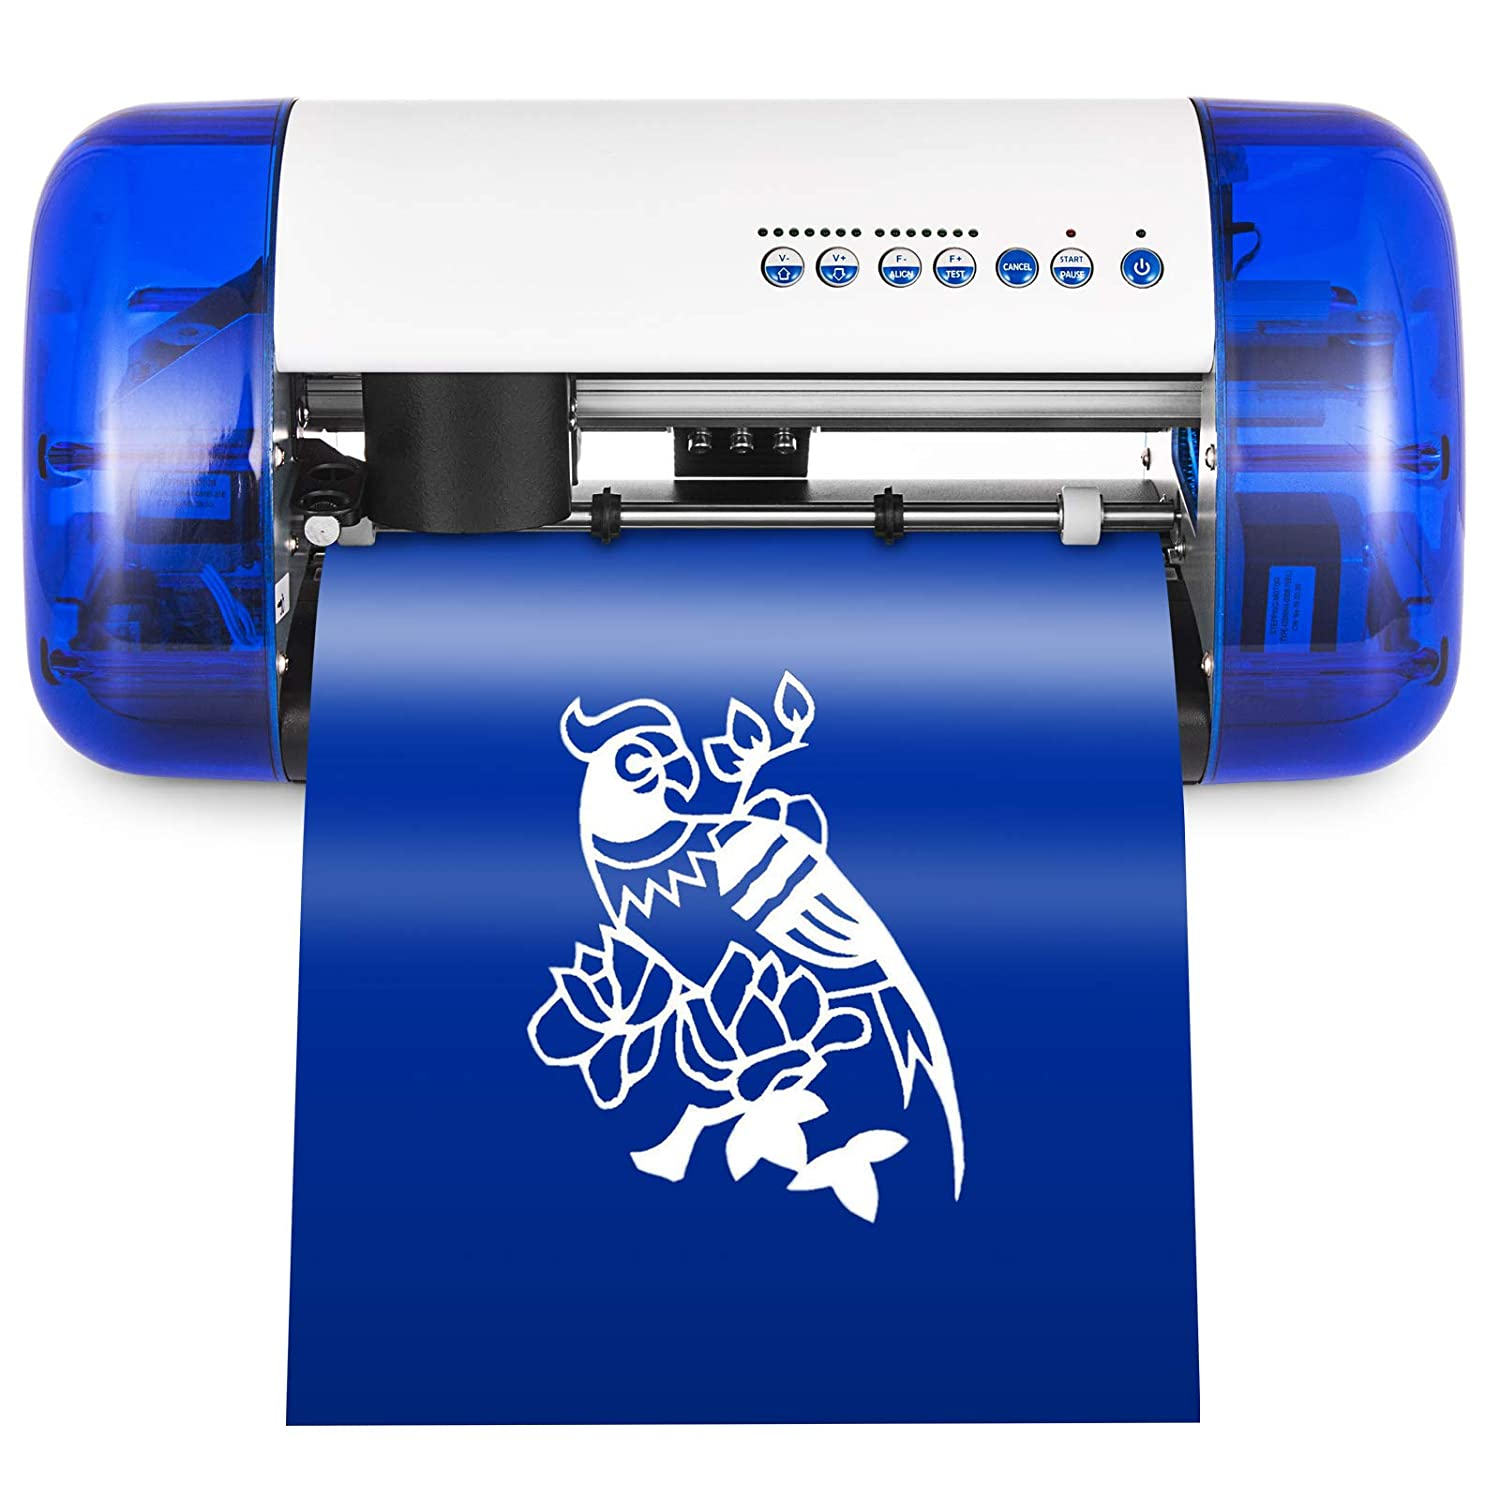 Printer Cutters Online Shopping For Clothing Shoes